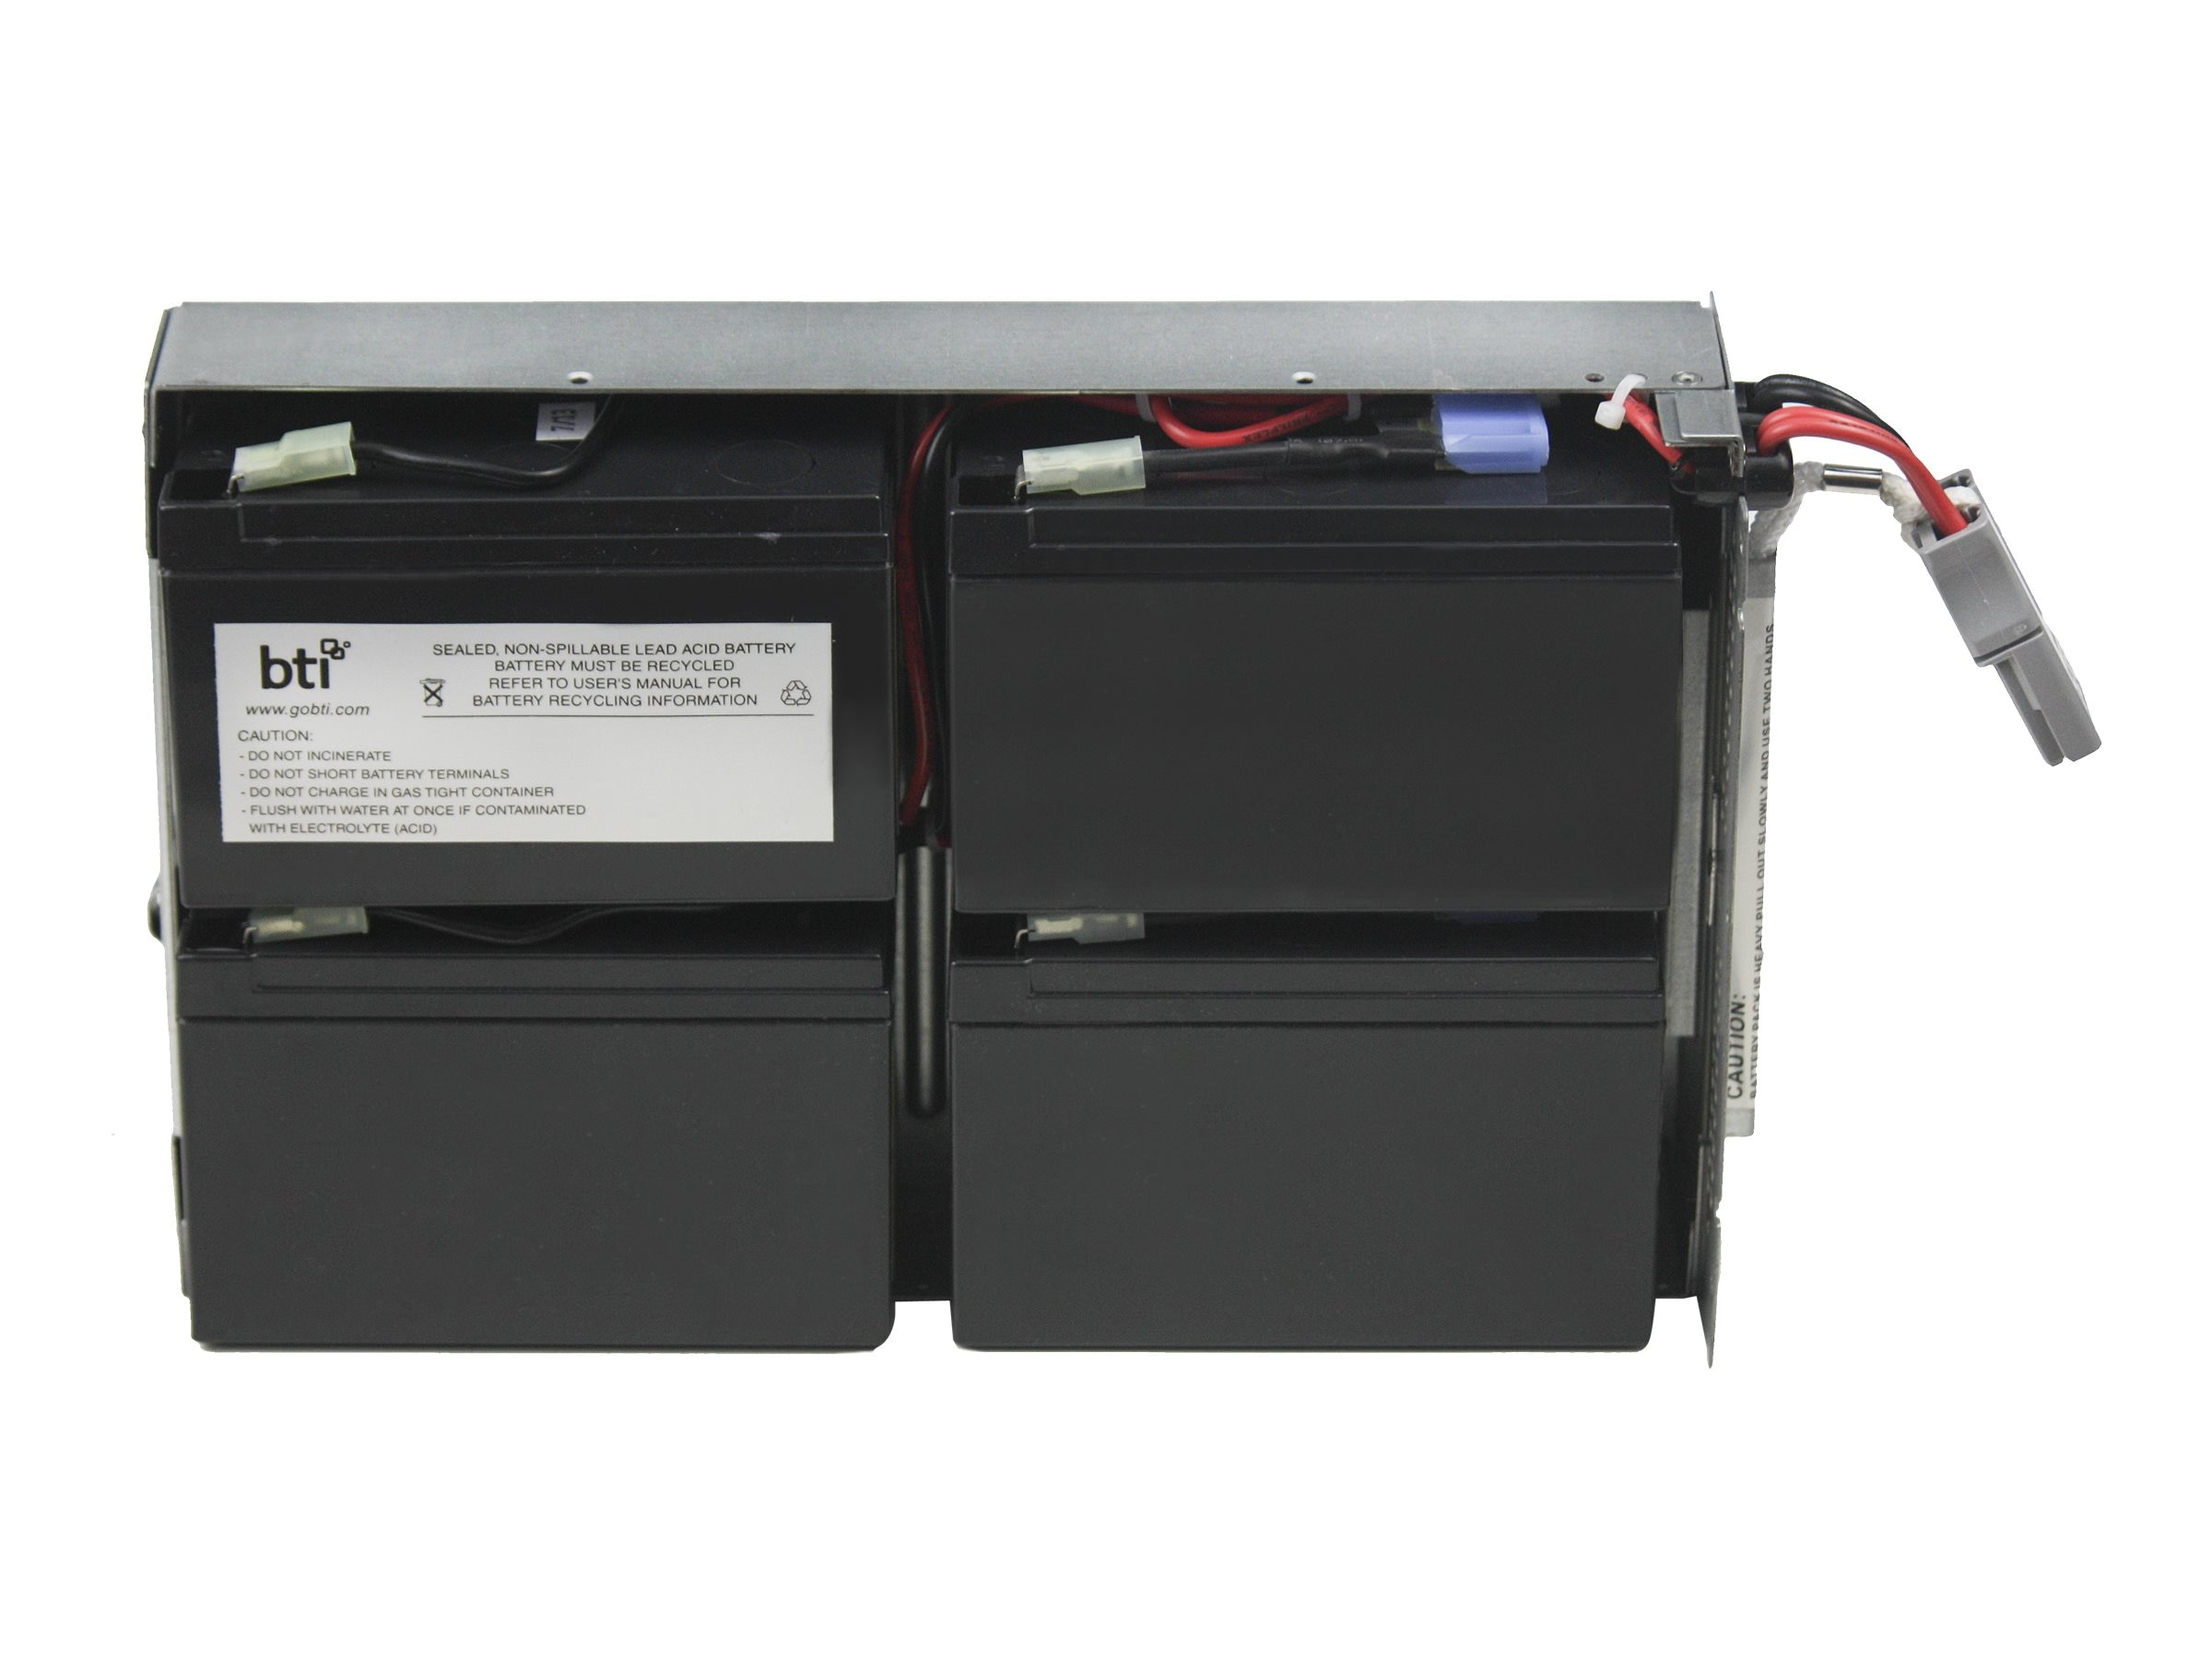 BTI Replacement UPS Battery for APC SMT1000RM2U RBC132 APCRBC132, APCRBC132-SLA132